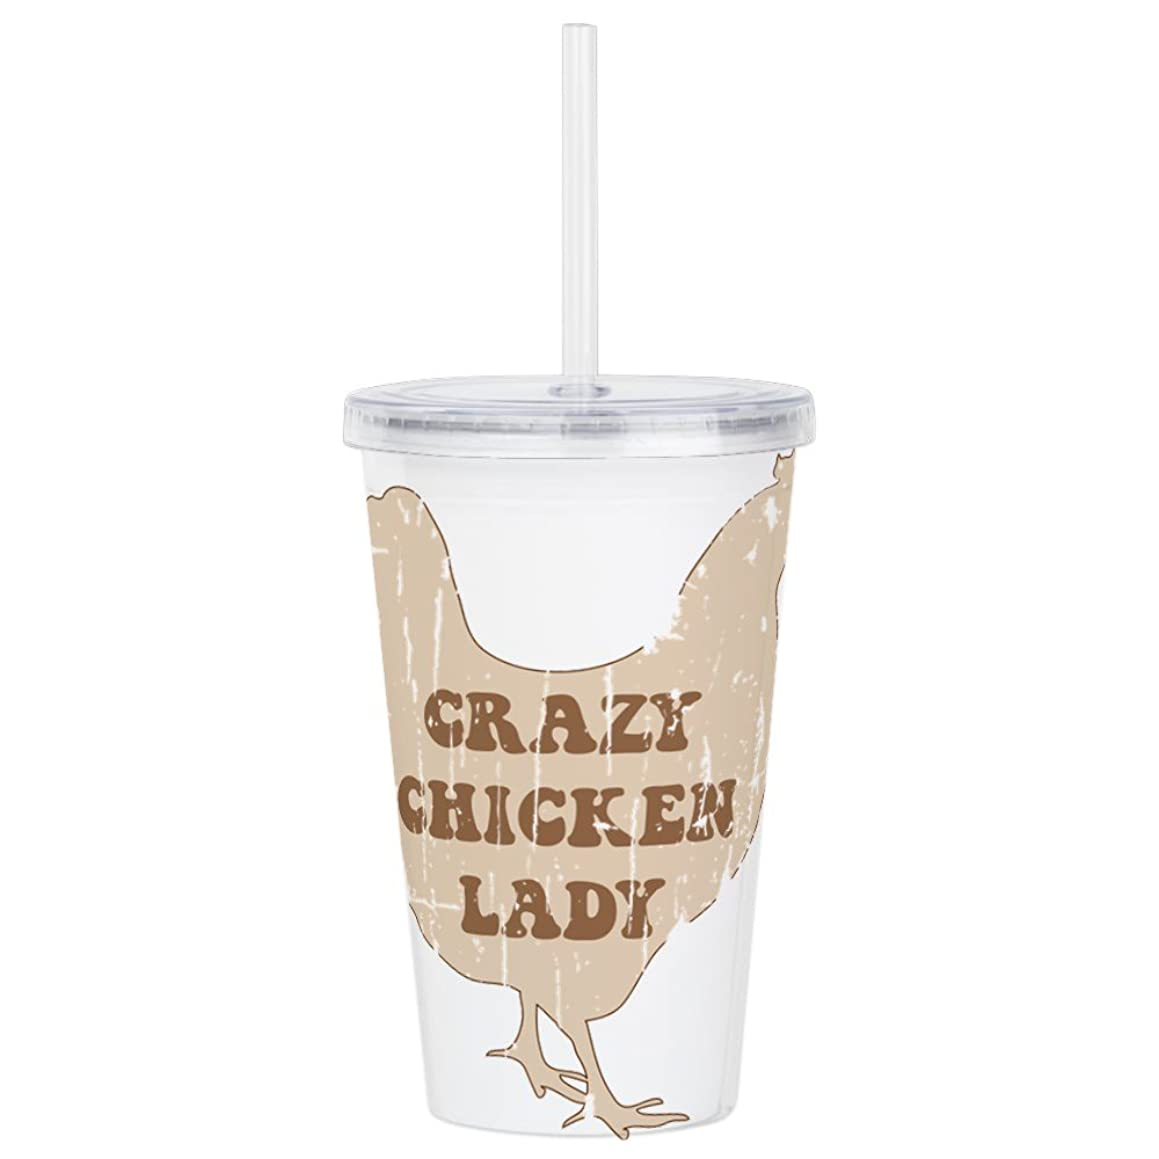 CafePress - Crazy Chicken Lady - Insulated Straw Cup, 20oz Acrylic Double-Wall Tumbler